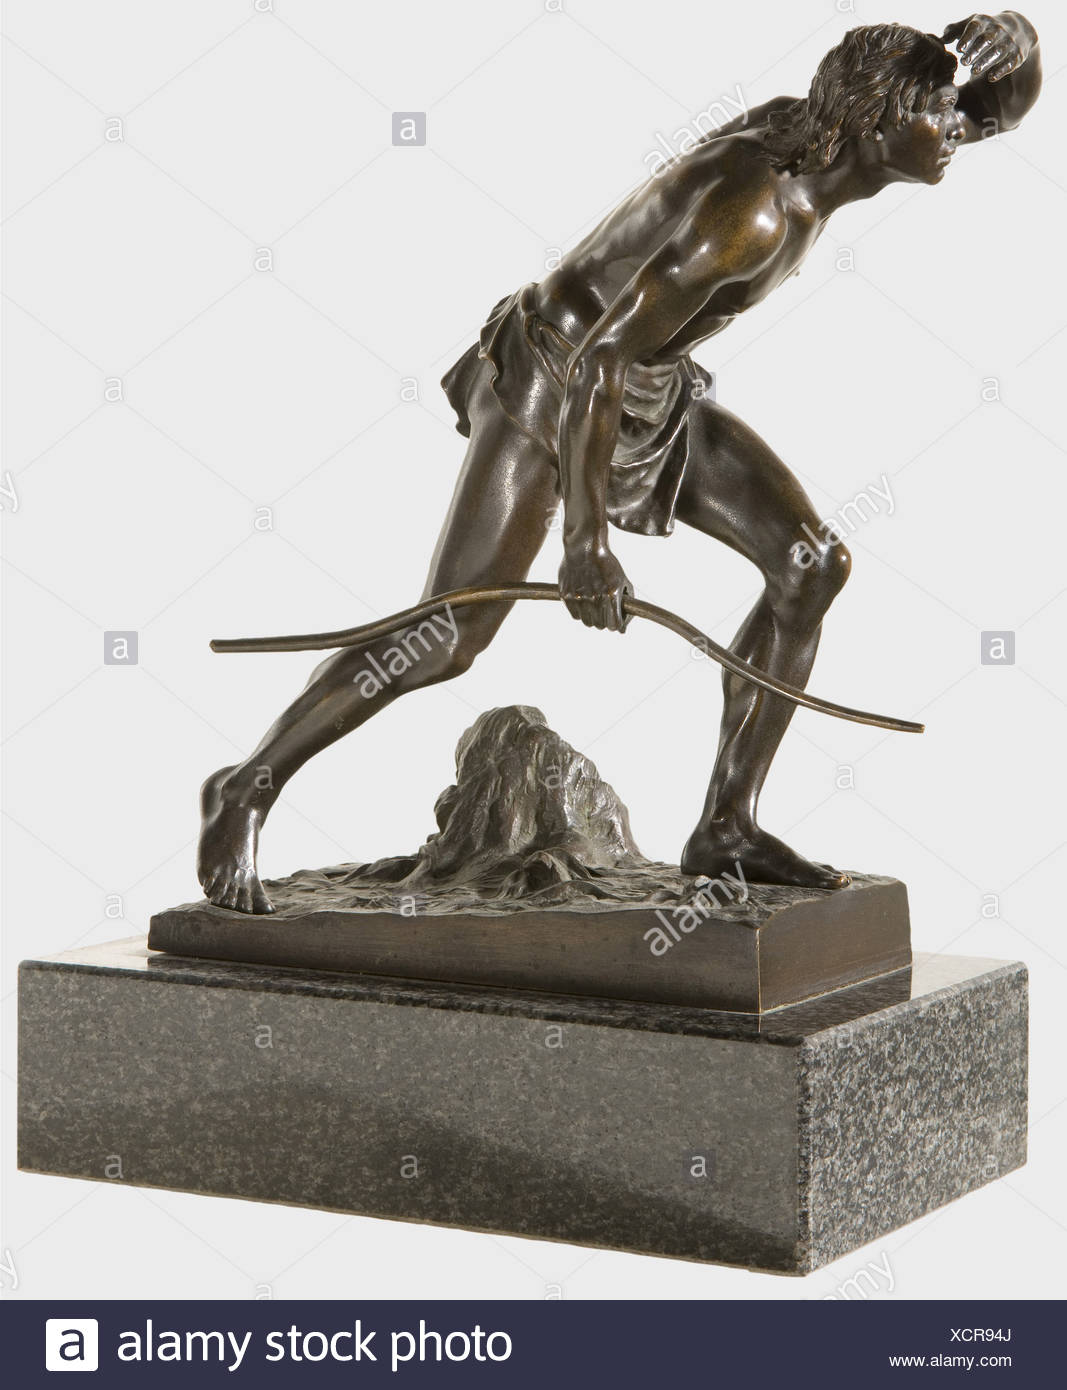 Josef Drischler (1838 - 1917) - a prehistoric hunter., Patinated bronze, prehistoric hunter with loincloth, holding a bow in his hand and looking for game. On a rectangular base, inscribed 'J. Drischler', grey-black marble plinth. Height 32 cm. Drischler worked in Berlin and especially focused on genre figures. In 1880 and 1892 he participated in the exhibitions of the art academy. fine arts, people, 19th century, fine arts, art, statuette, figurine, figurines, statuettes, sculpture, sculptures, object, objects, stills, clipping, clippings, cut out, c, Artist's Copyright has not to be cleared - Stock Image